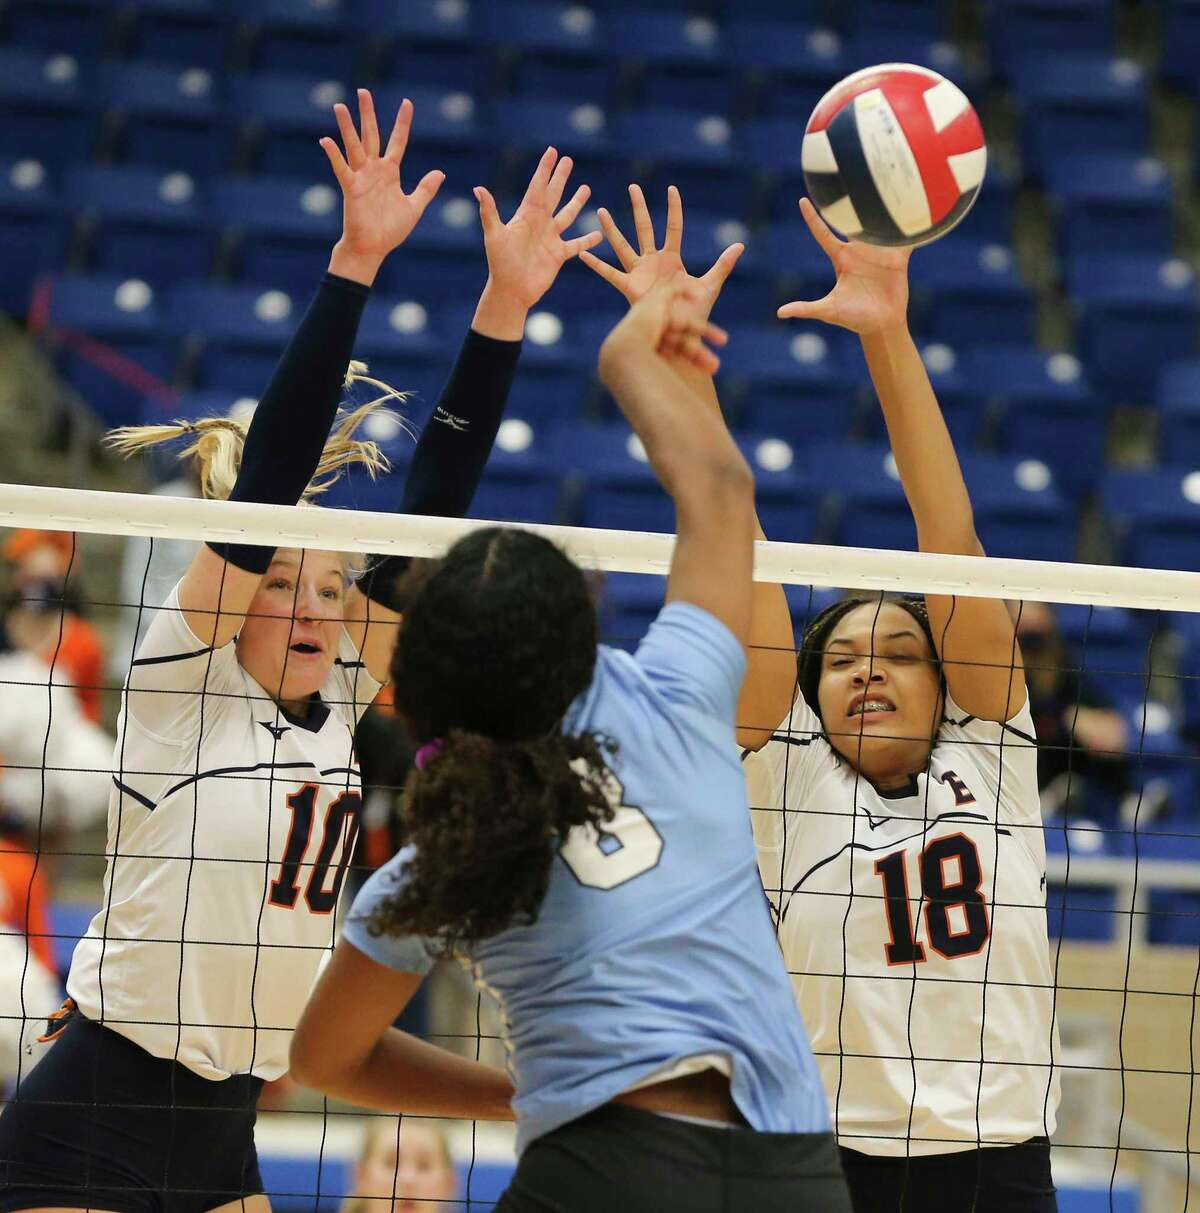 Brandeis' Carlee Pharris (10) and Austin Smoak (18) go up to block a shot by Arissa Willis (08) during their Region IV-6A semifinal volleyball playoff game at Northside Sports Gym on Tuesday, Dec. 1, 2020. The Broncos defeated the Hawks in three consecutive games to take the match and move on in the playoffs.